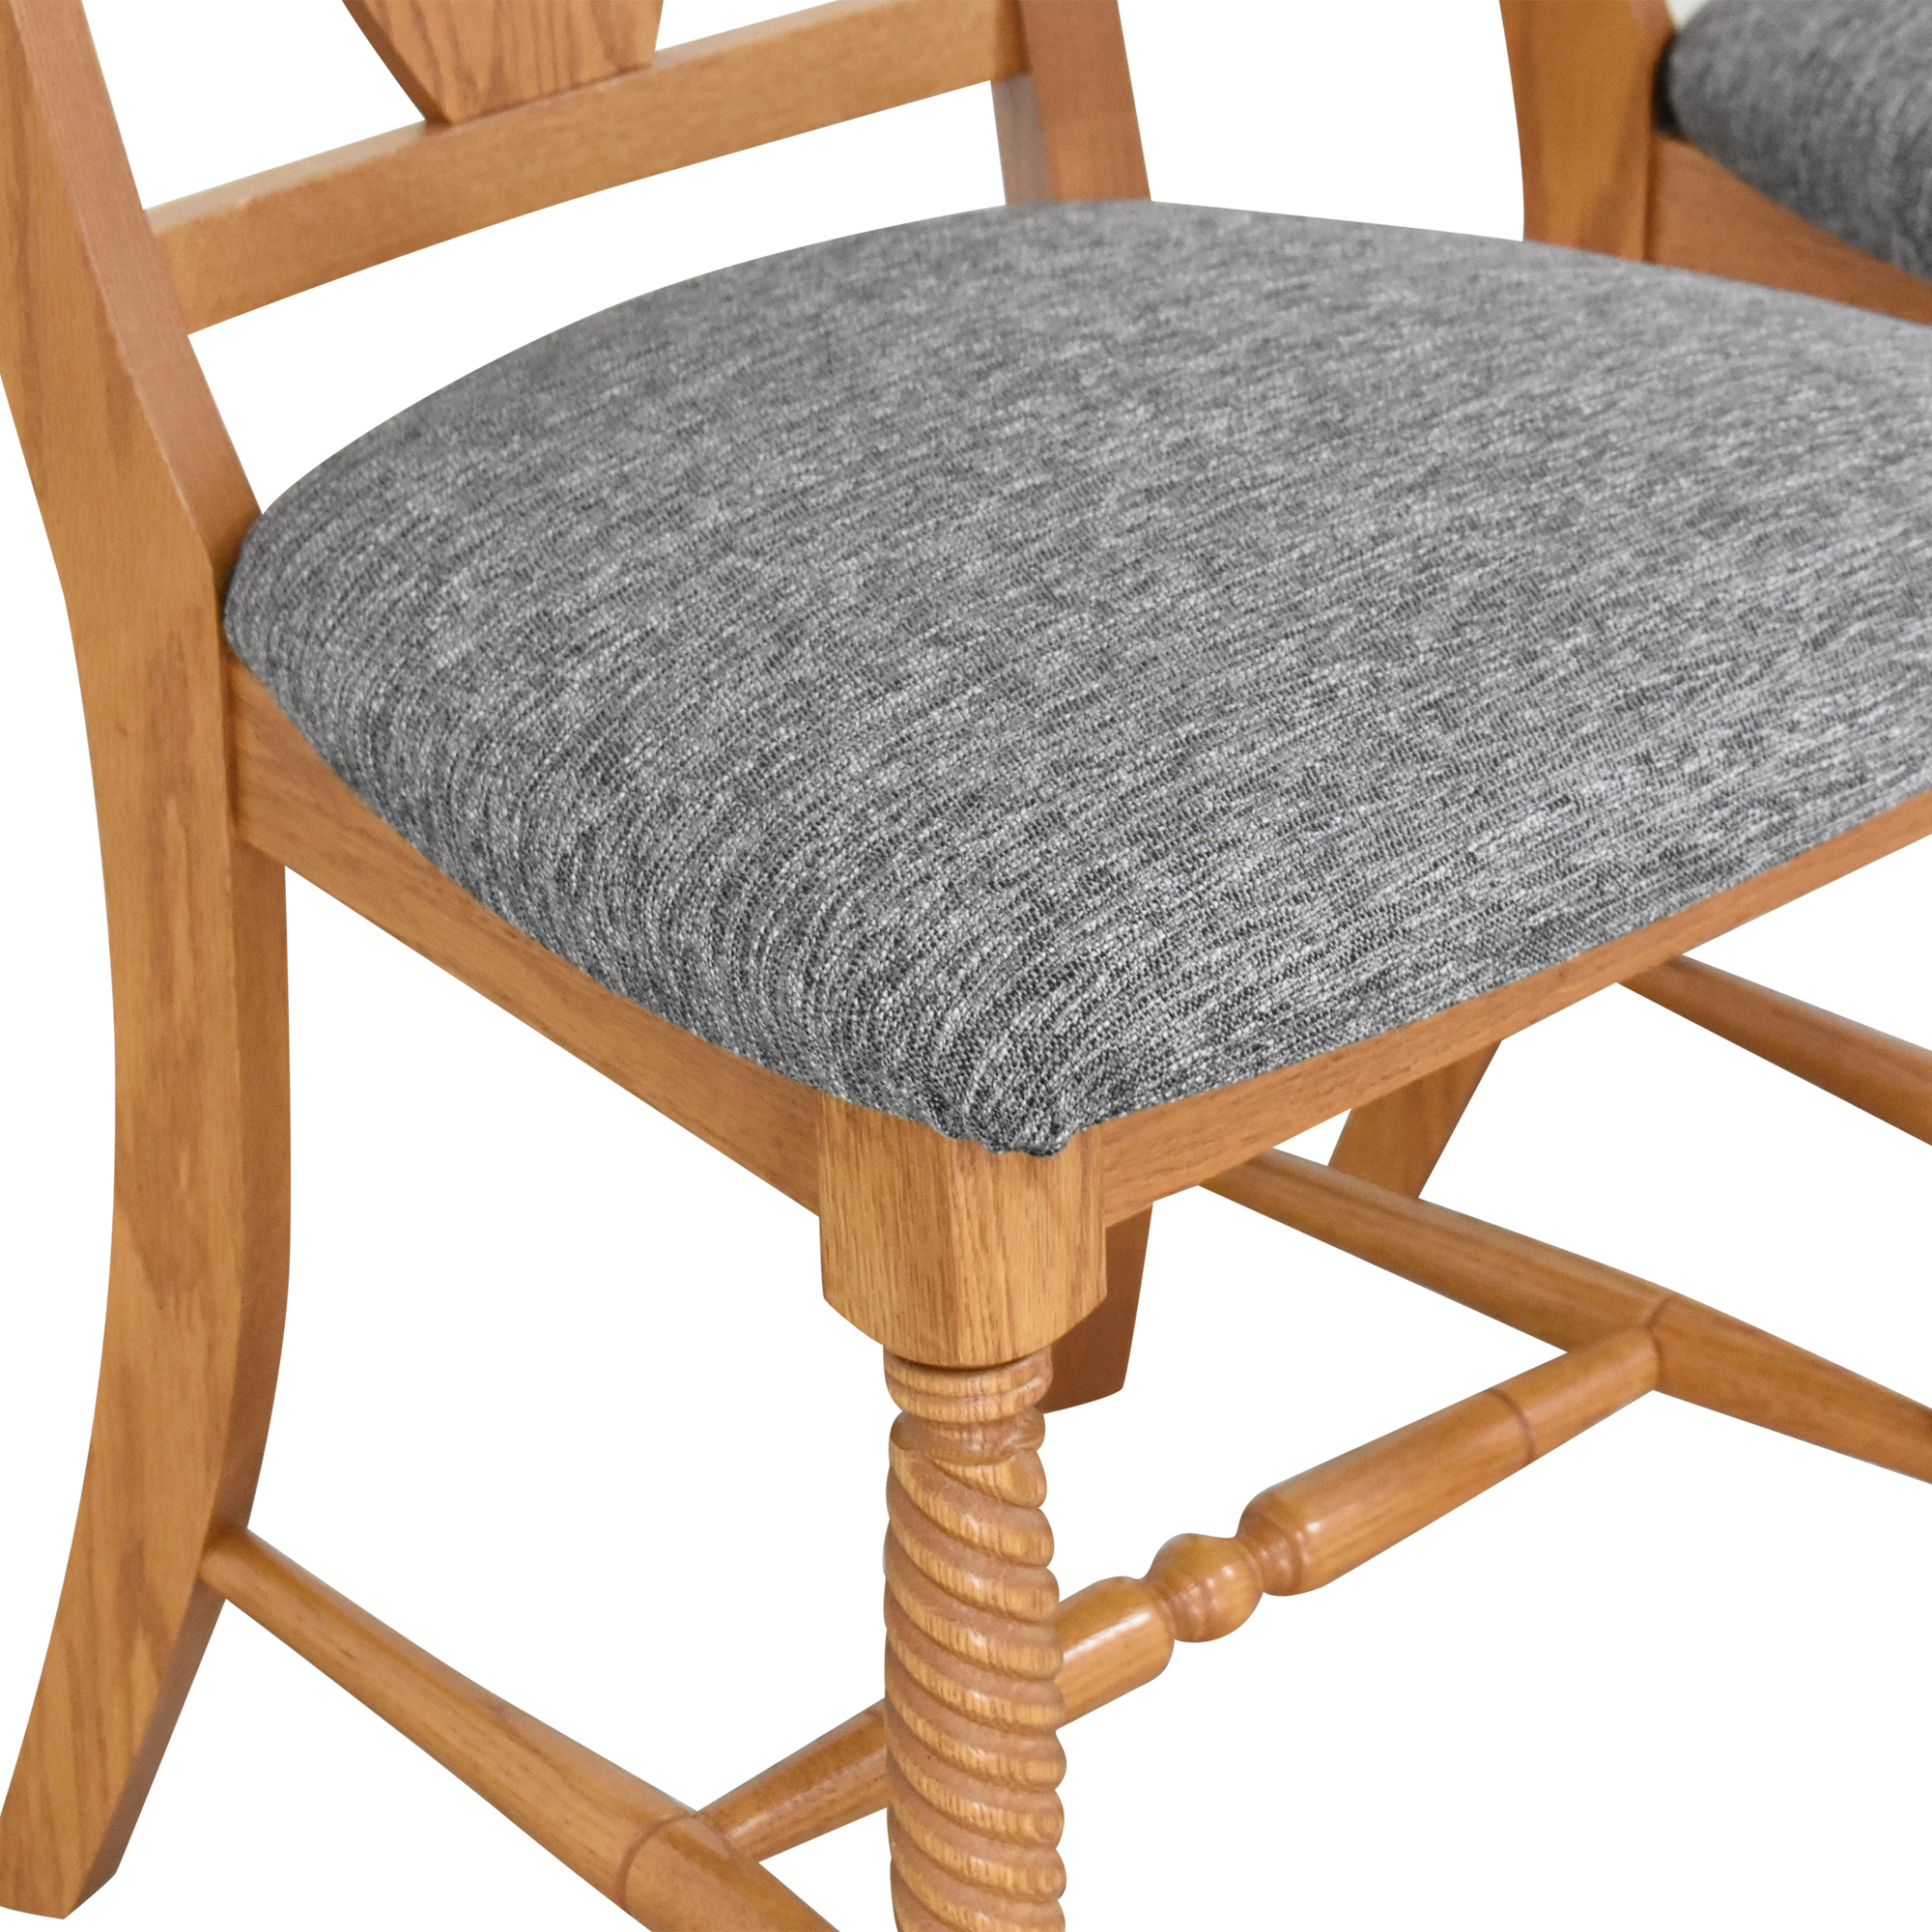 J & H Dinettes J & H Dinettes Upholstered Dining Side Chairs on sale